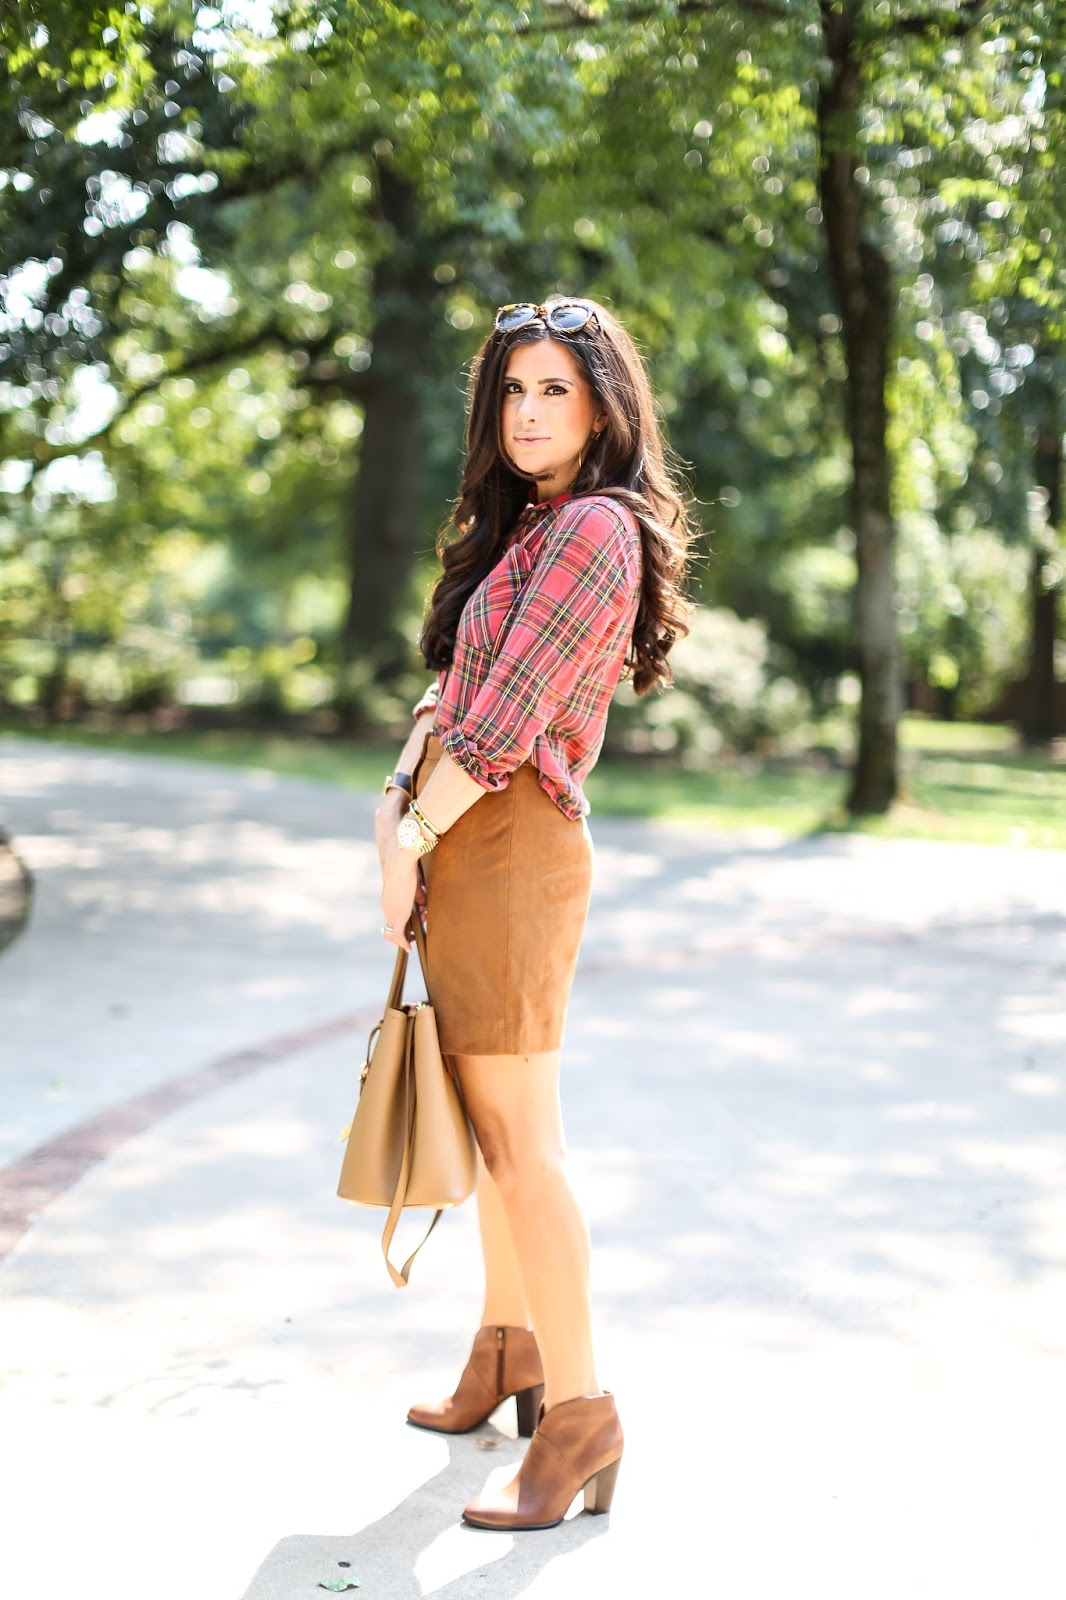 fall ootd pinterest 2015, fall outfit ideas plaid shirt and booties, vince camuto booties brown leather, emily gemma, prada tan tote, michele gold watch, pinterest oufits fall casual-2.jpg